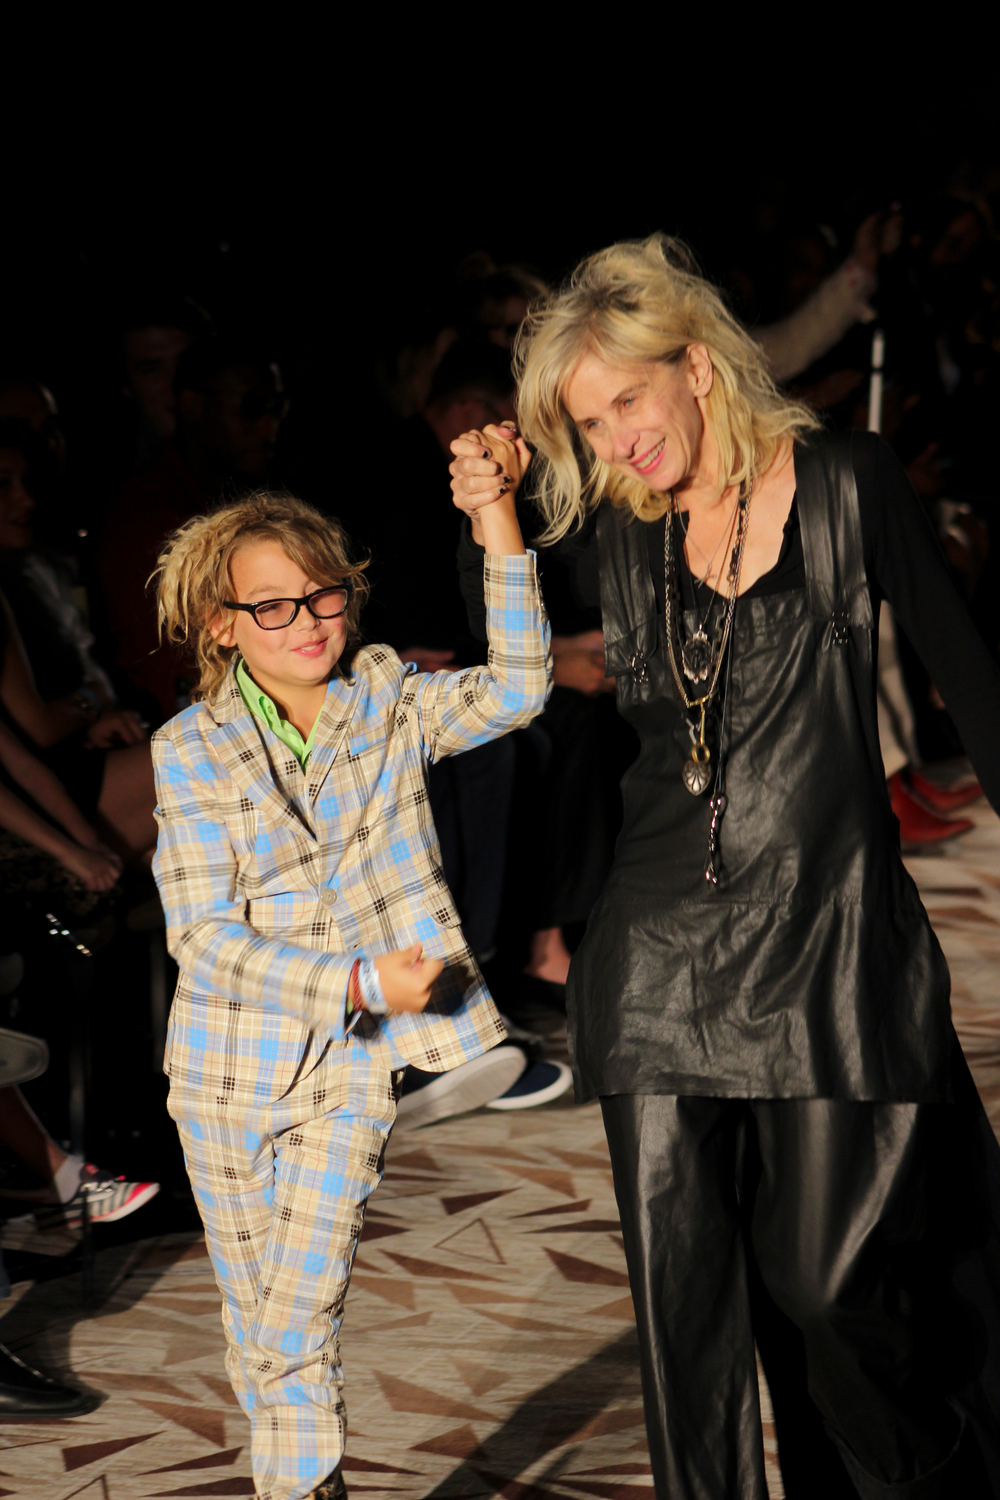 Gail Chovan smiles with her son as she walks down the runway after showing her collection. Photo by Miranda Chiechi.